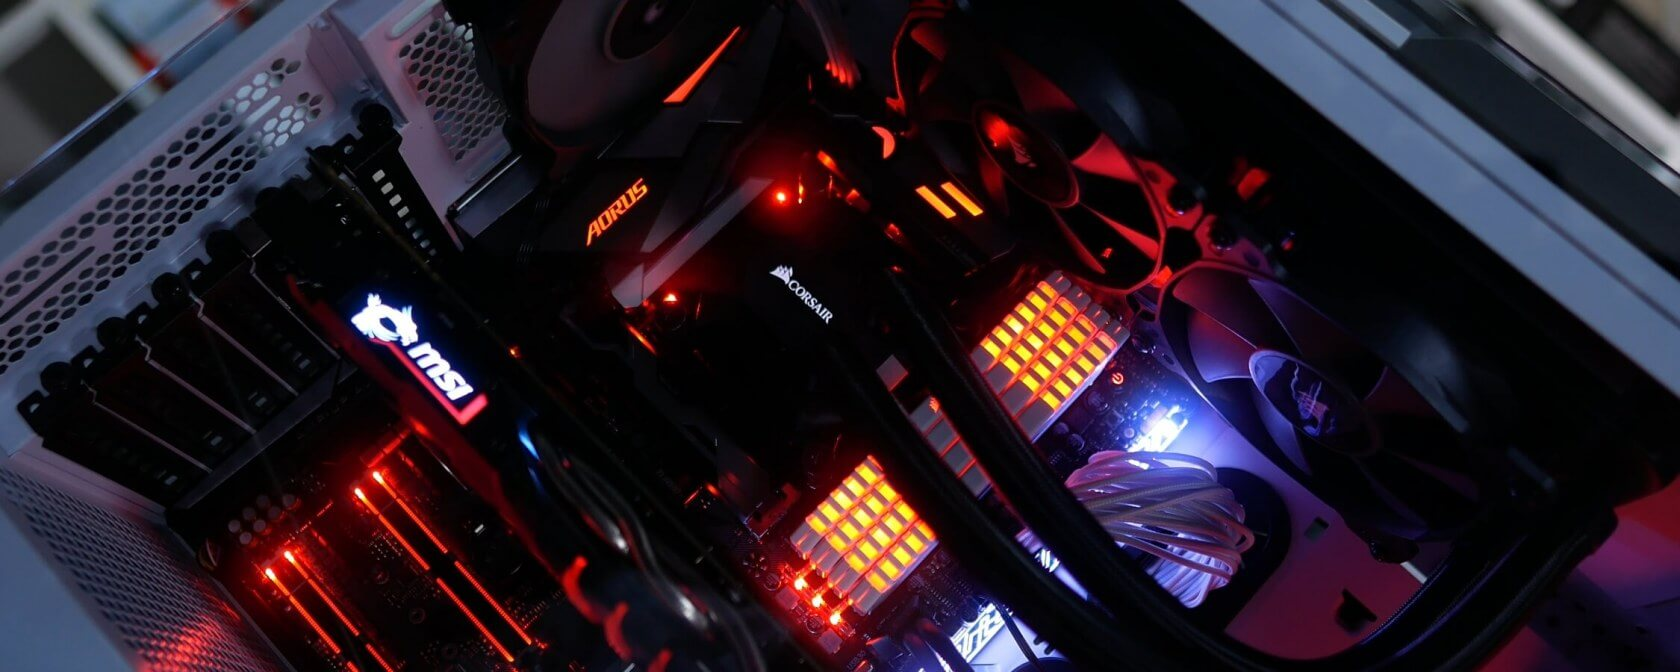 Why AMD's superior compatibility could end -- and it's all